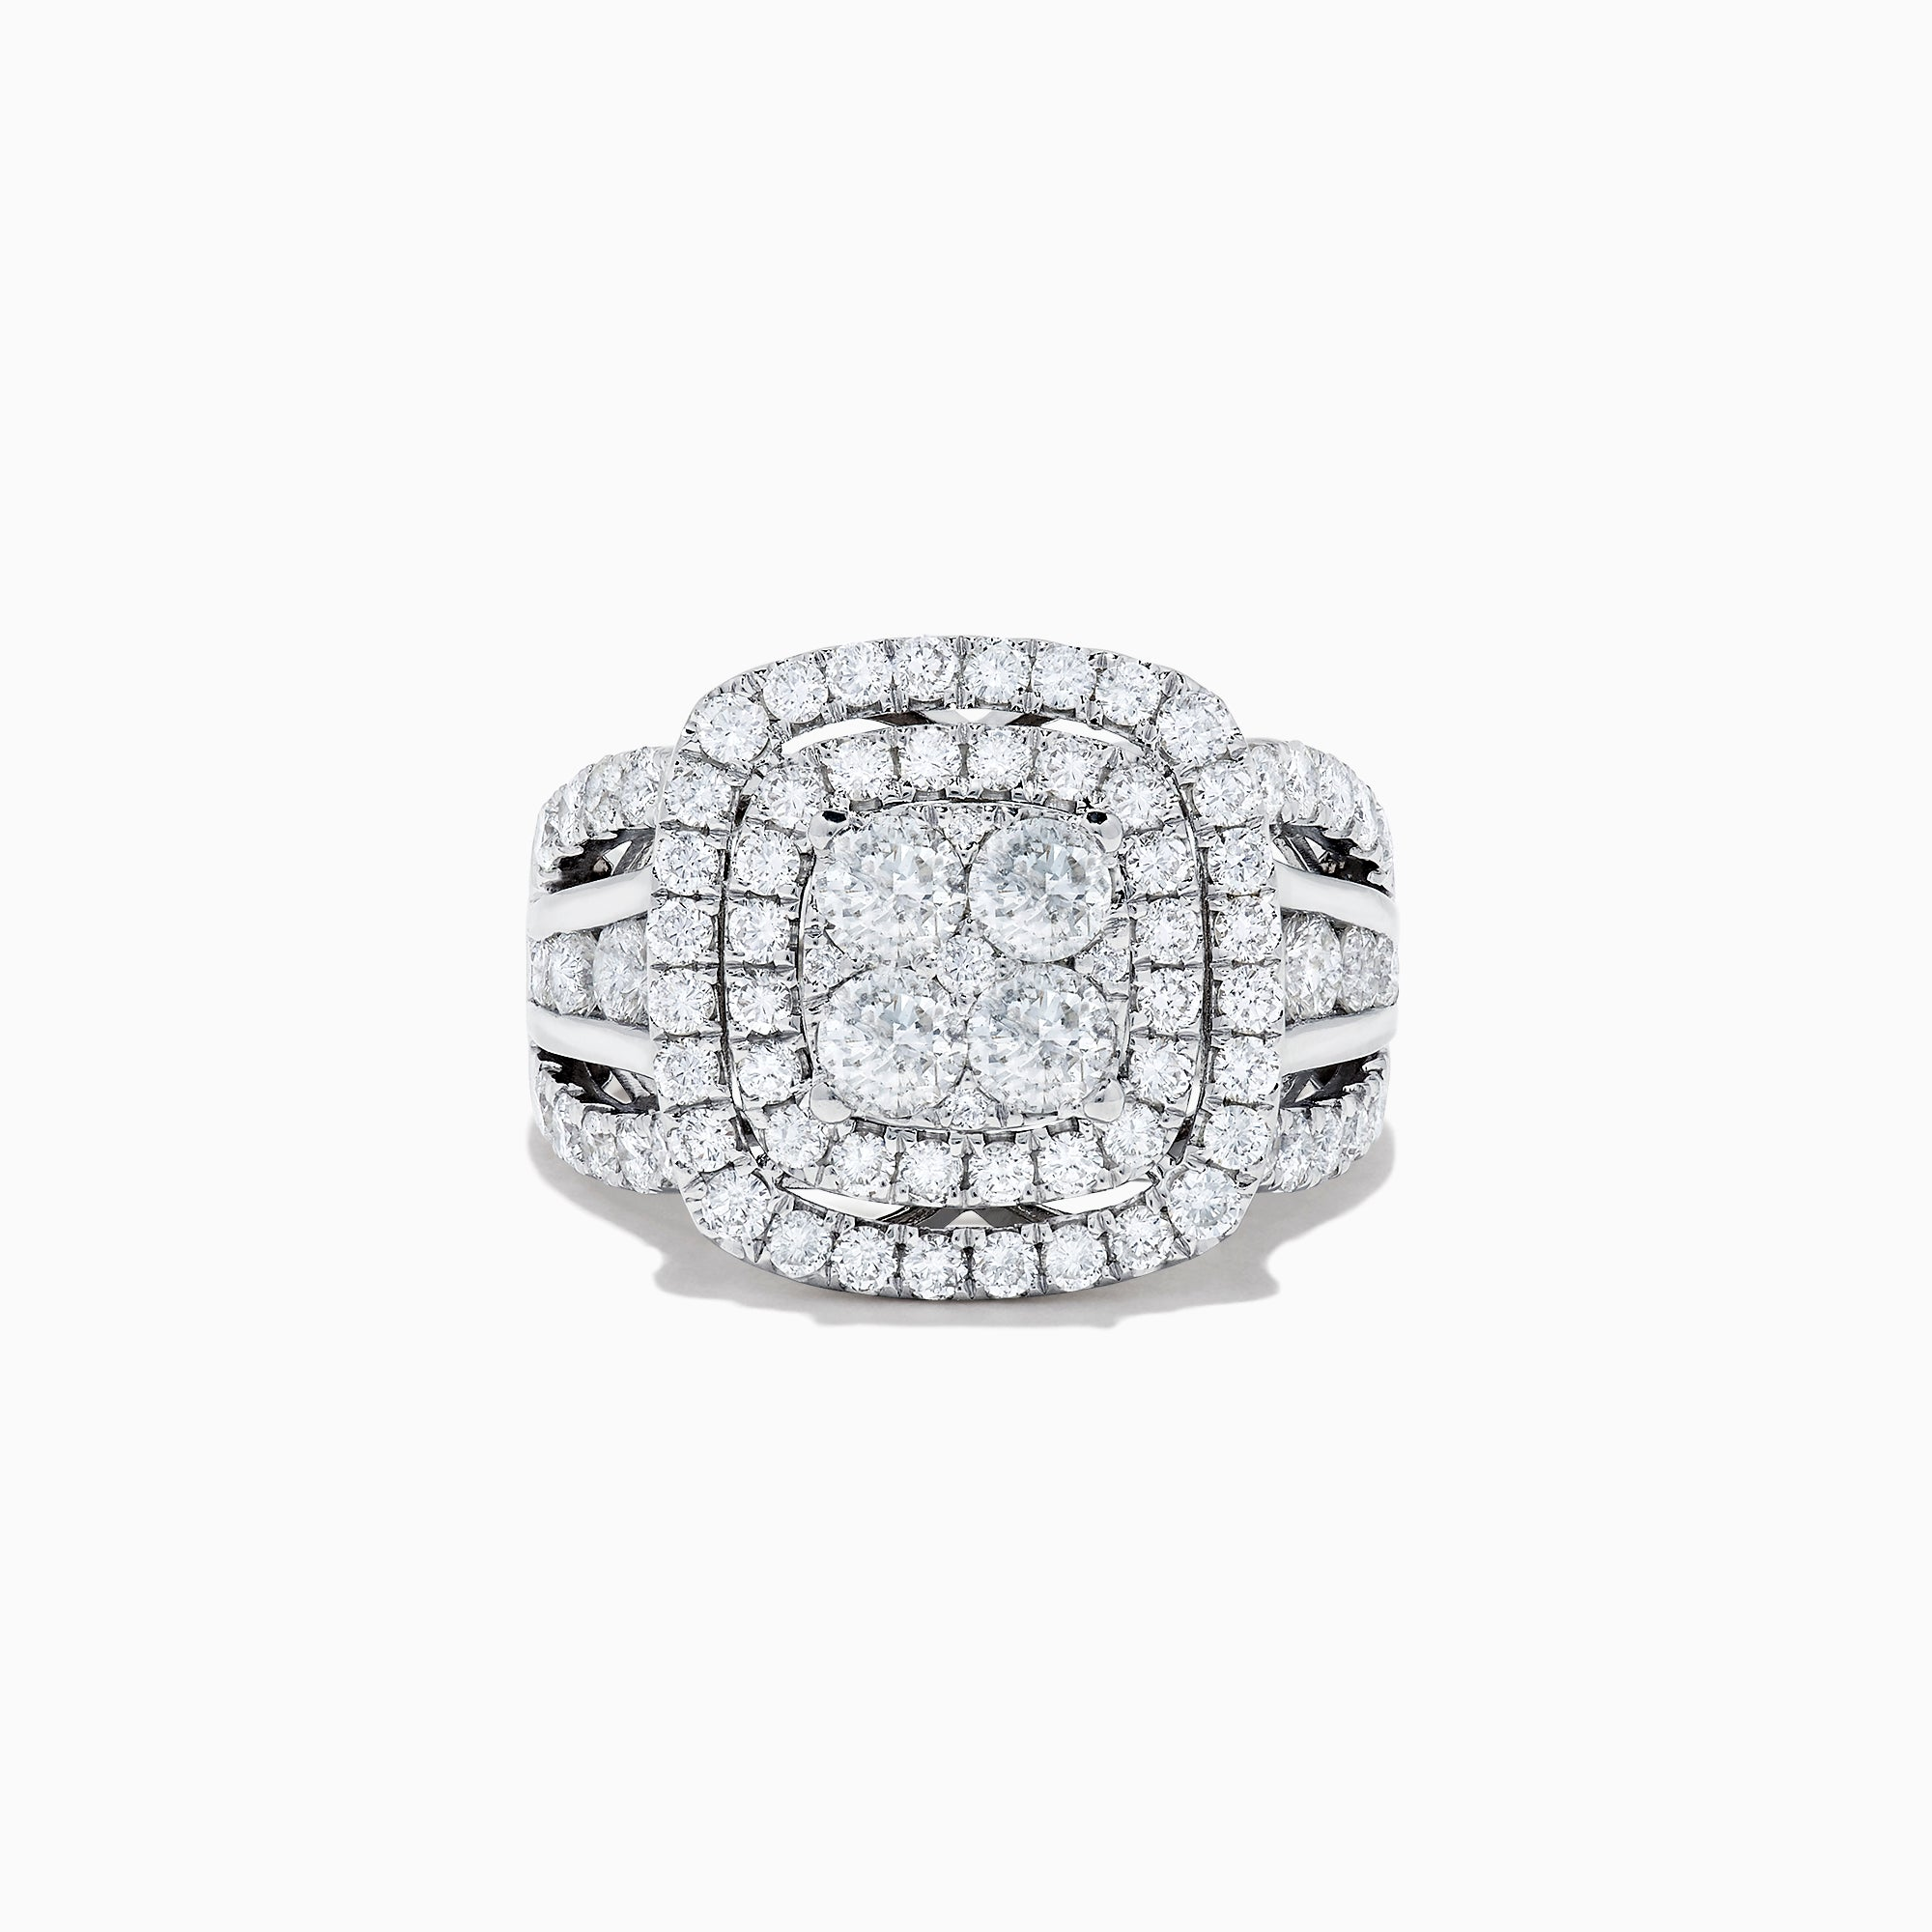 Effy Pave Classica 14K White Gold Diamond Ring, 2.65 TCW